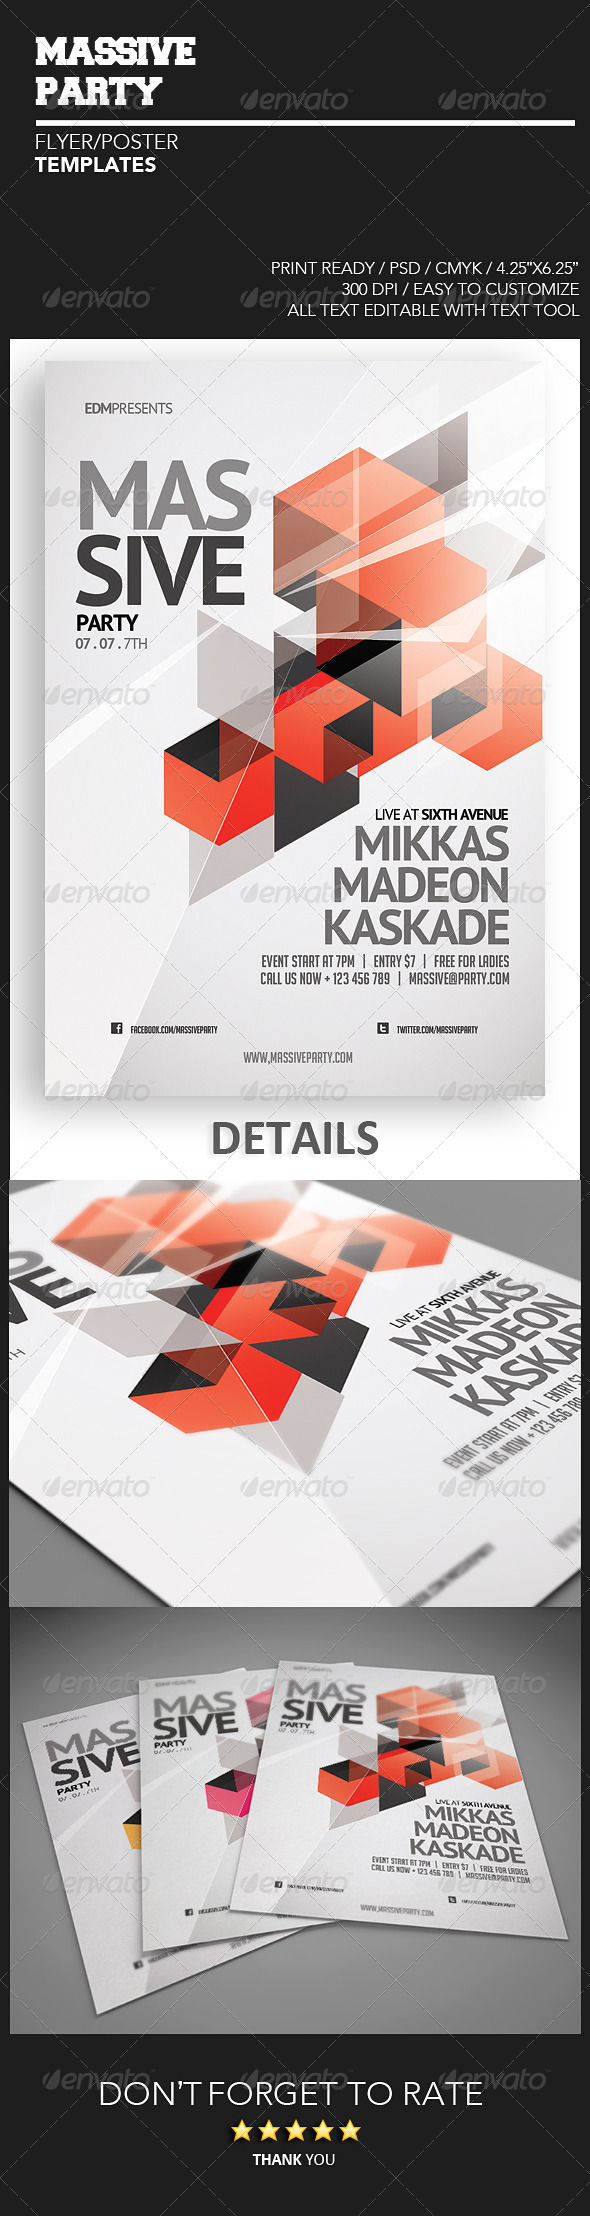 Massive Party Flyer - Events Flyers